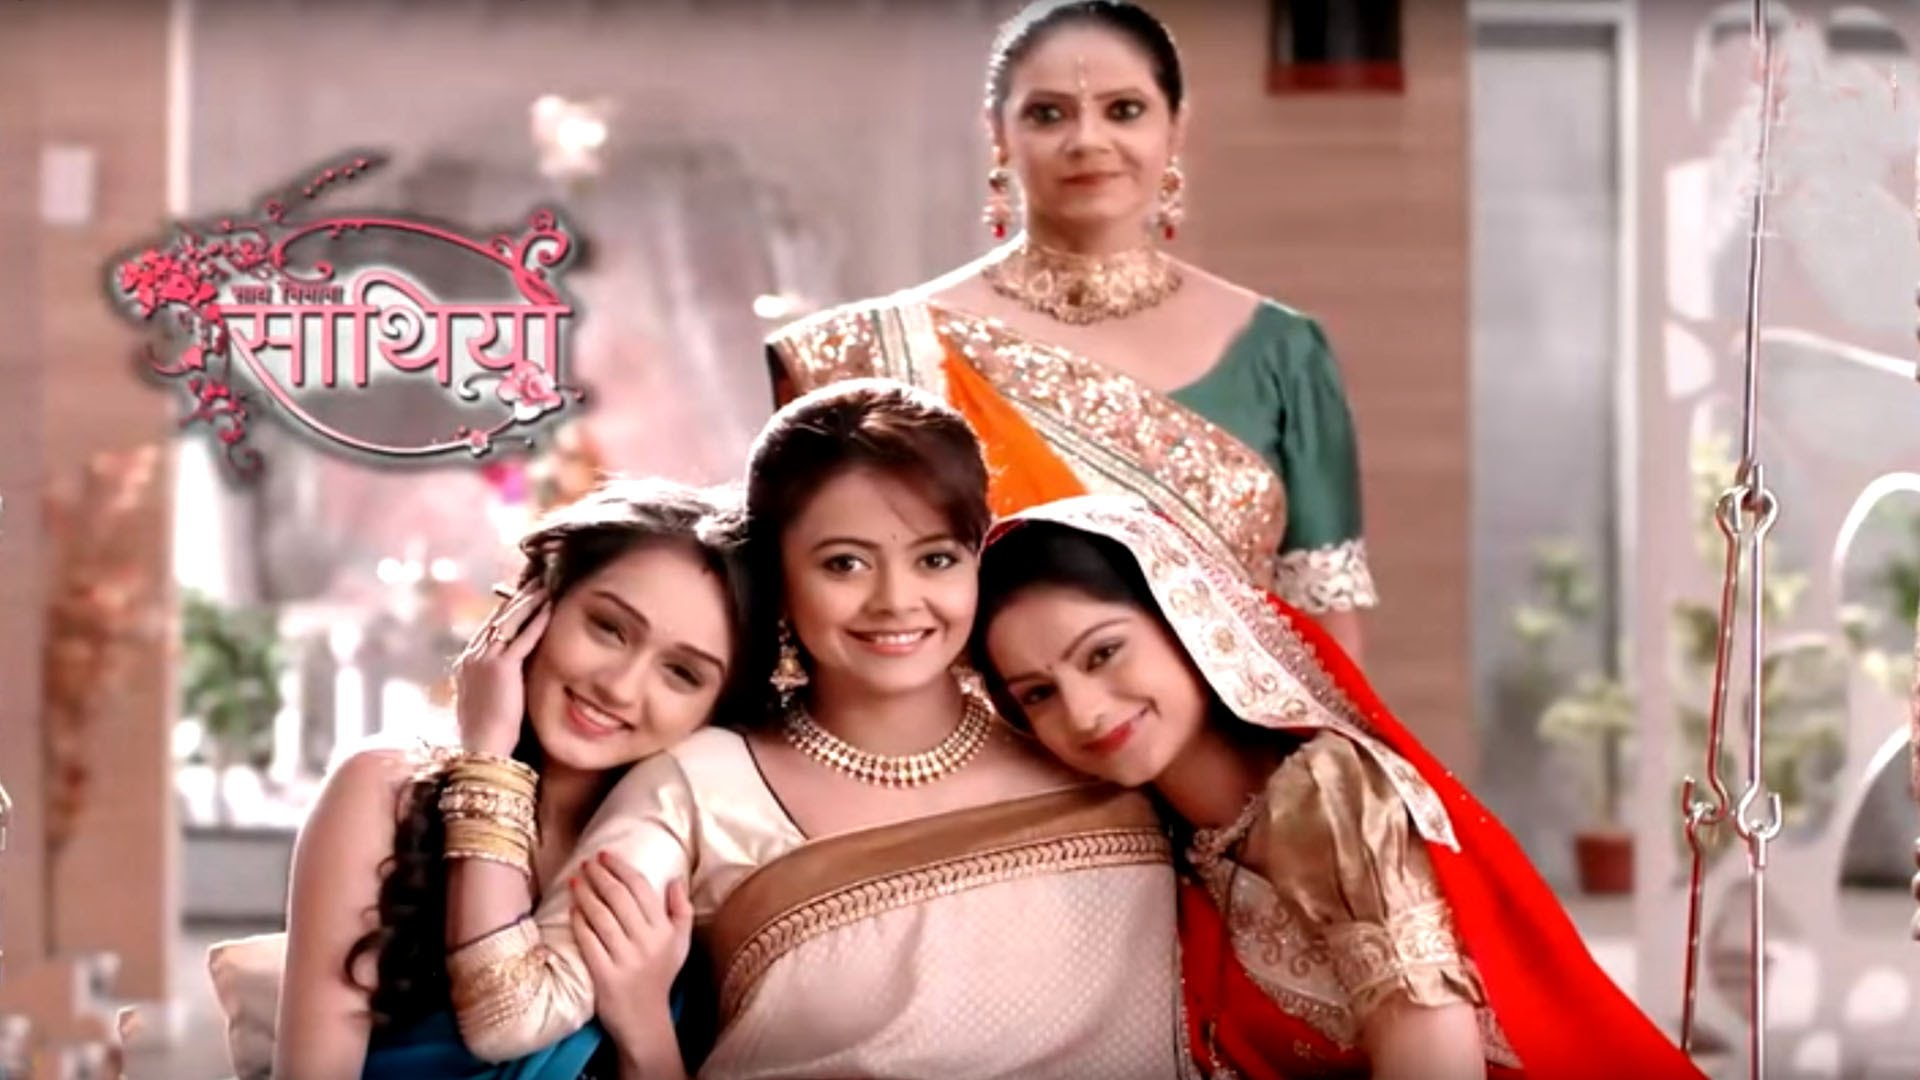 Dharam pushes Gaura away! Saath Nibhana Saathiya 2nd May 2016 Episode Written Update